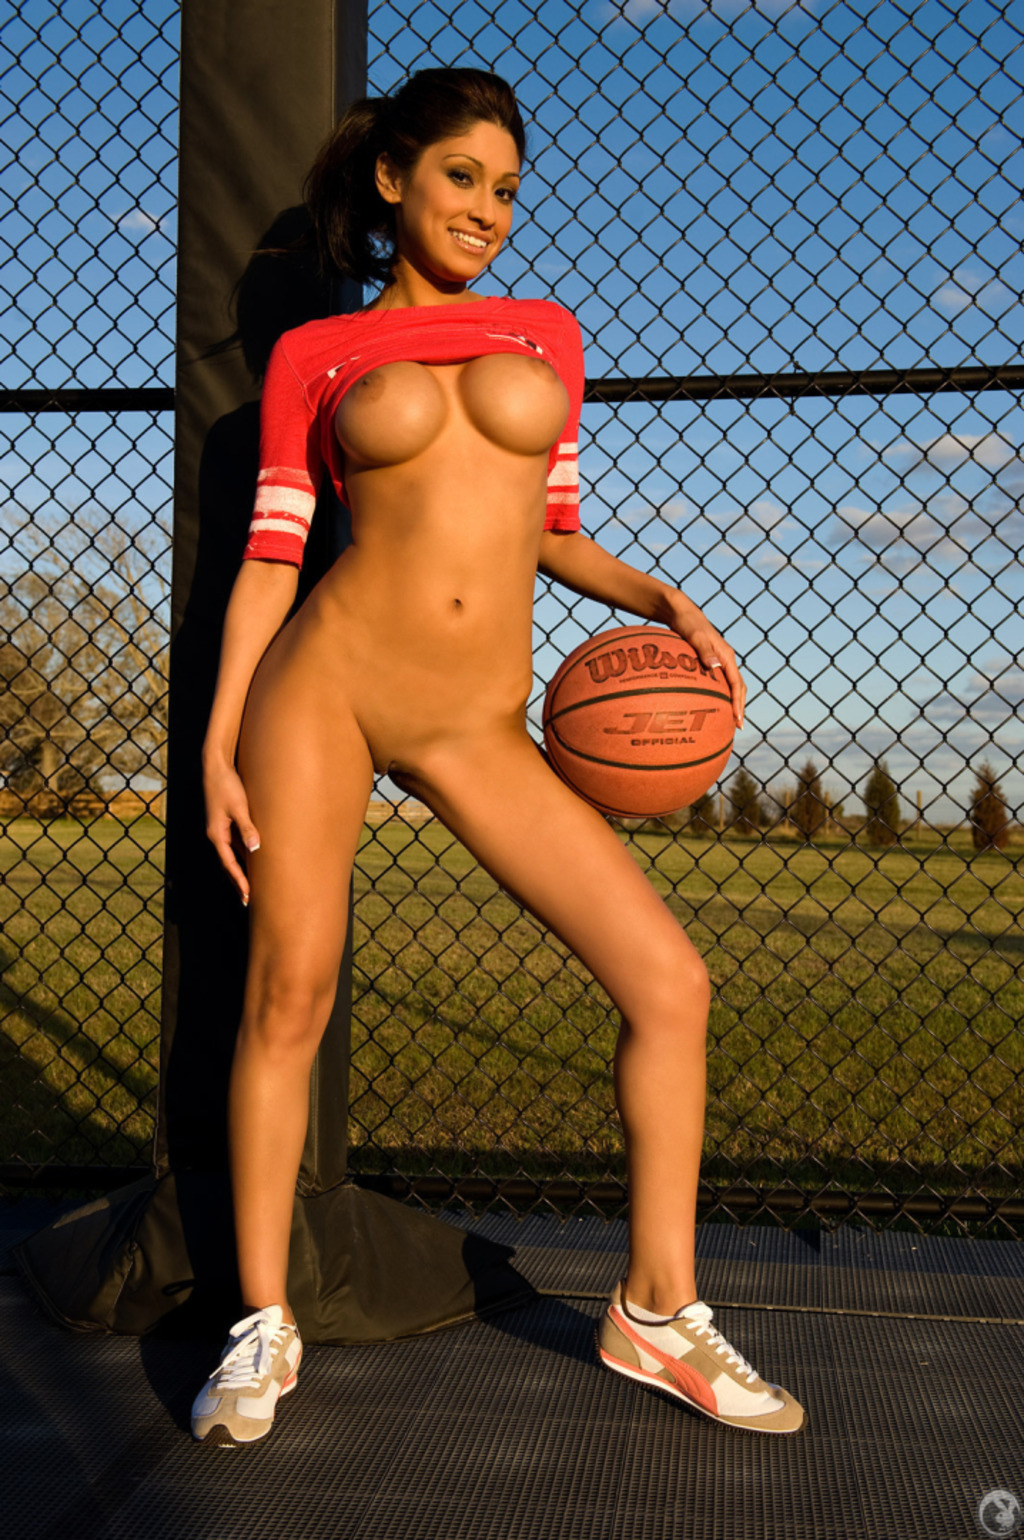 Girls Playing Naked Basketball